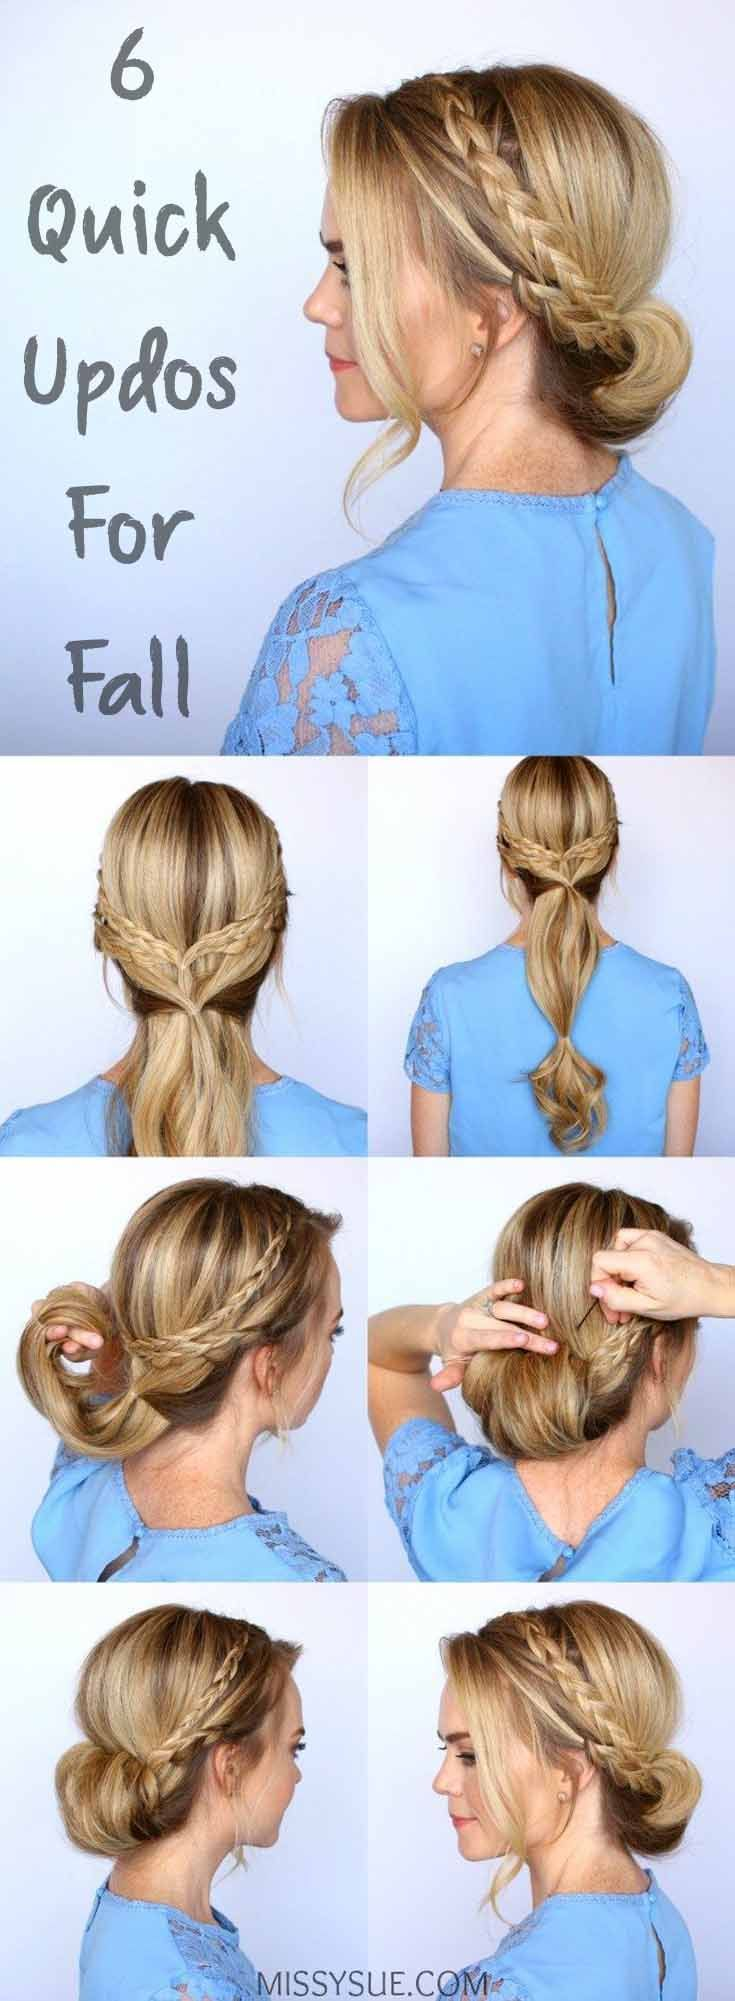 quick updos for fall up dos updo and internet